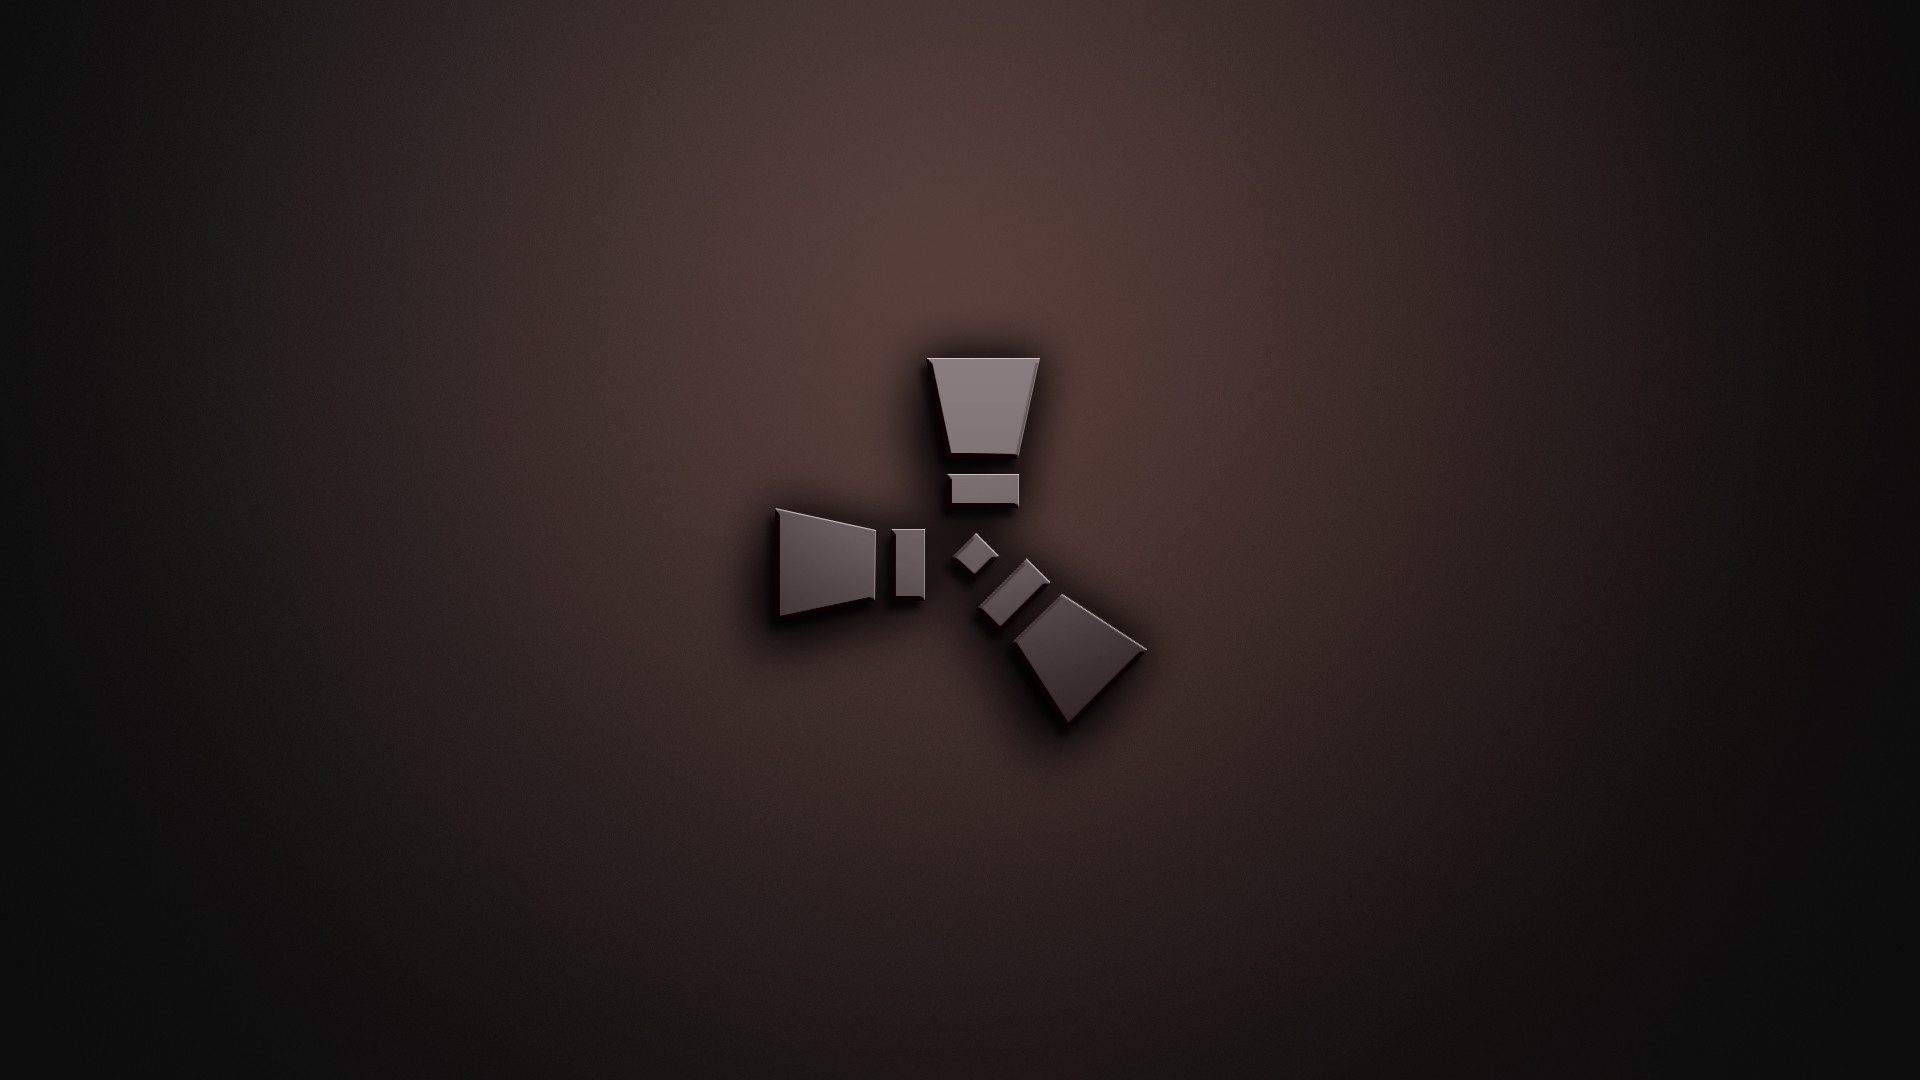 Symbols Wallpapers 65 Images